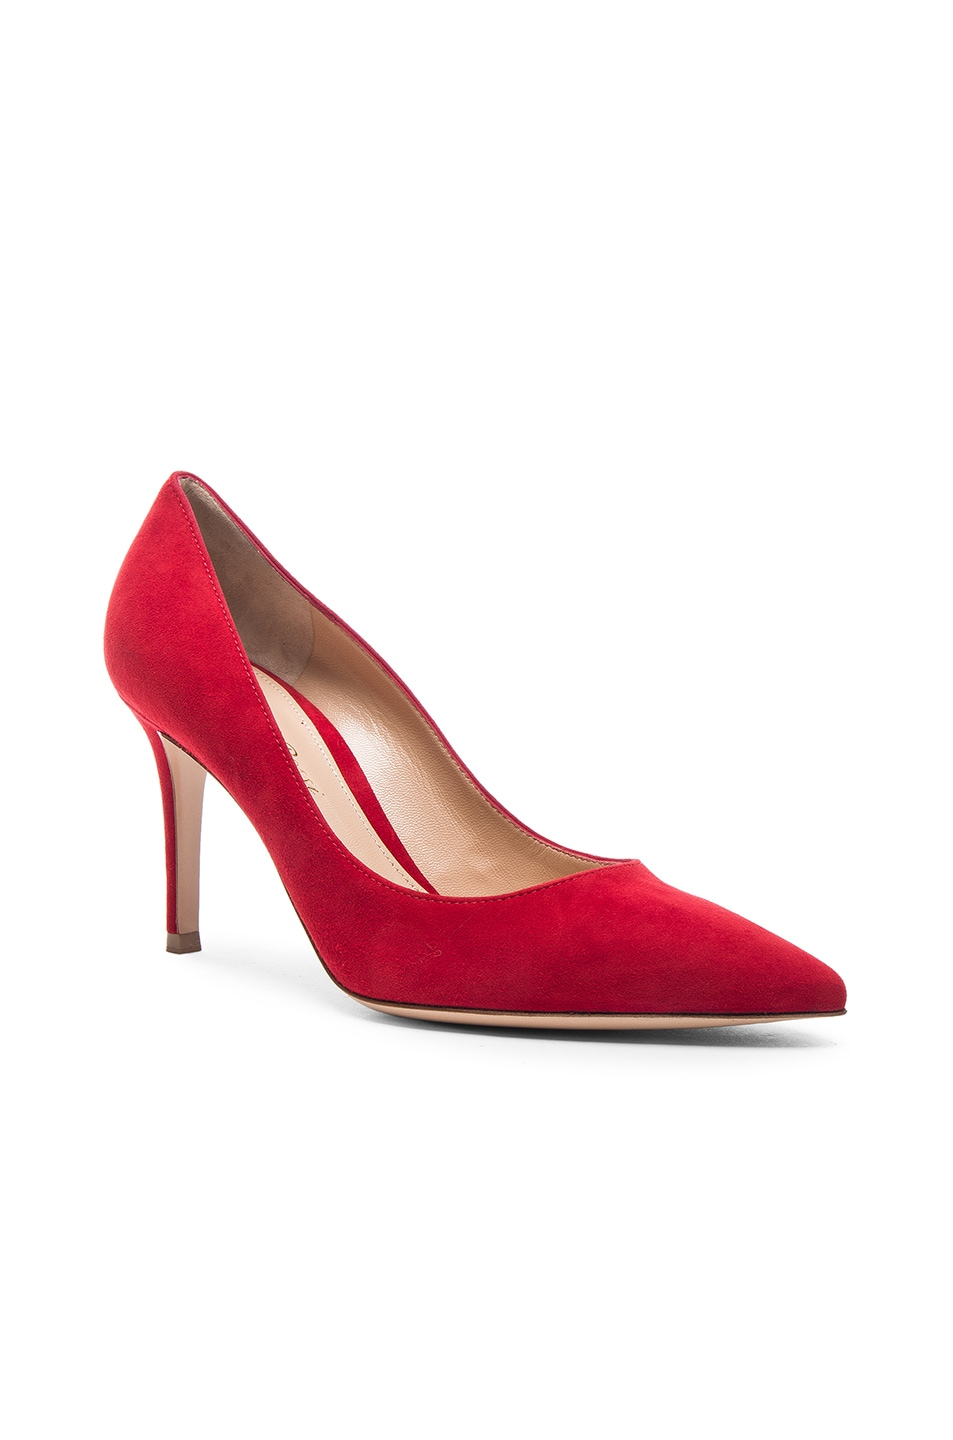 Image 2 of Gianvito Rossi Suede Gianvito Pumps in Tabasco Red